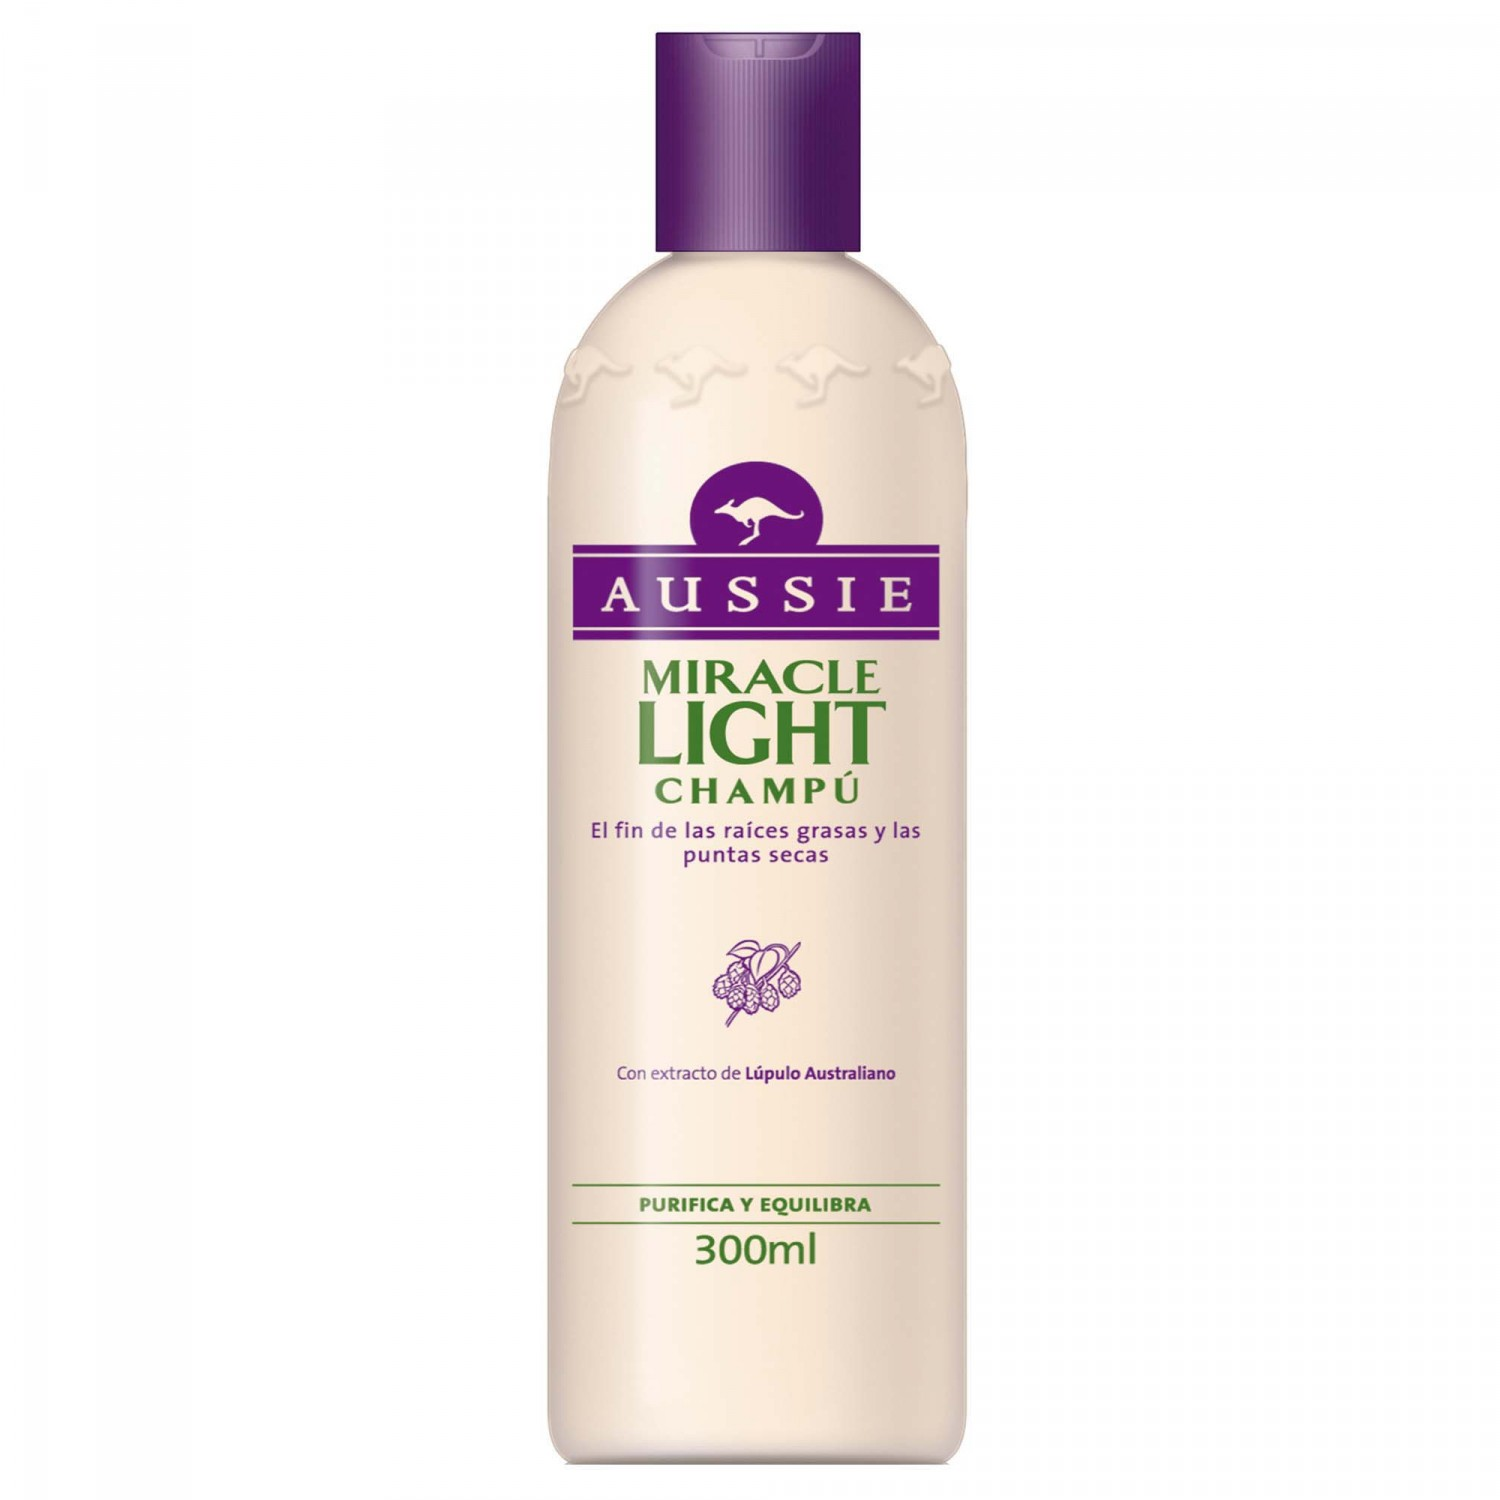 Aussie champu miracle light con extracto lupulo australiano purifica equilibra de 30cl. en bote